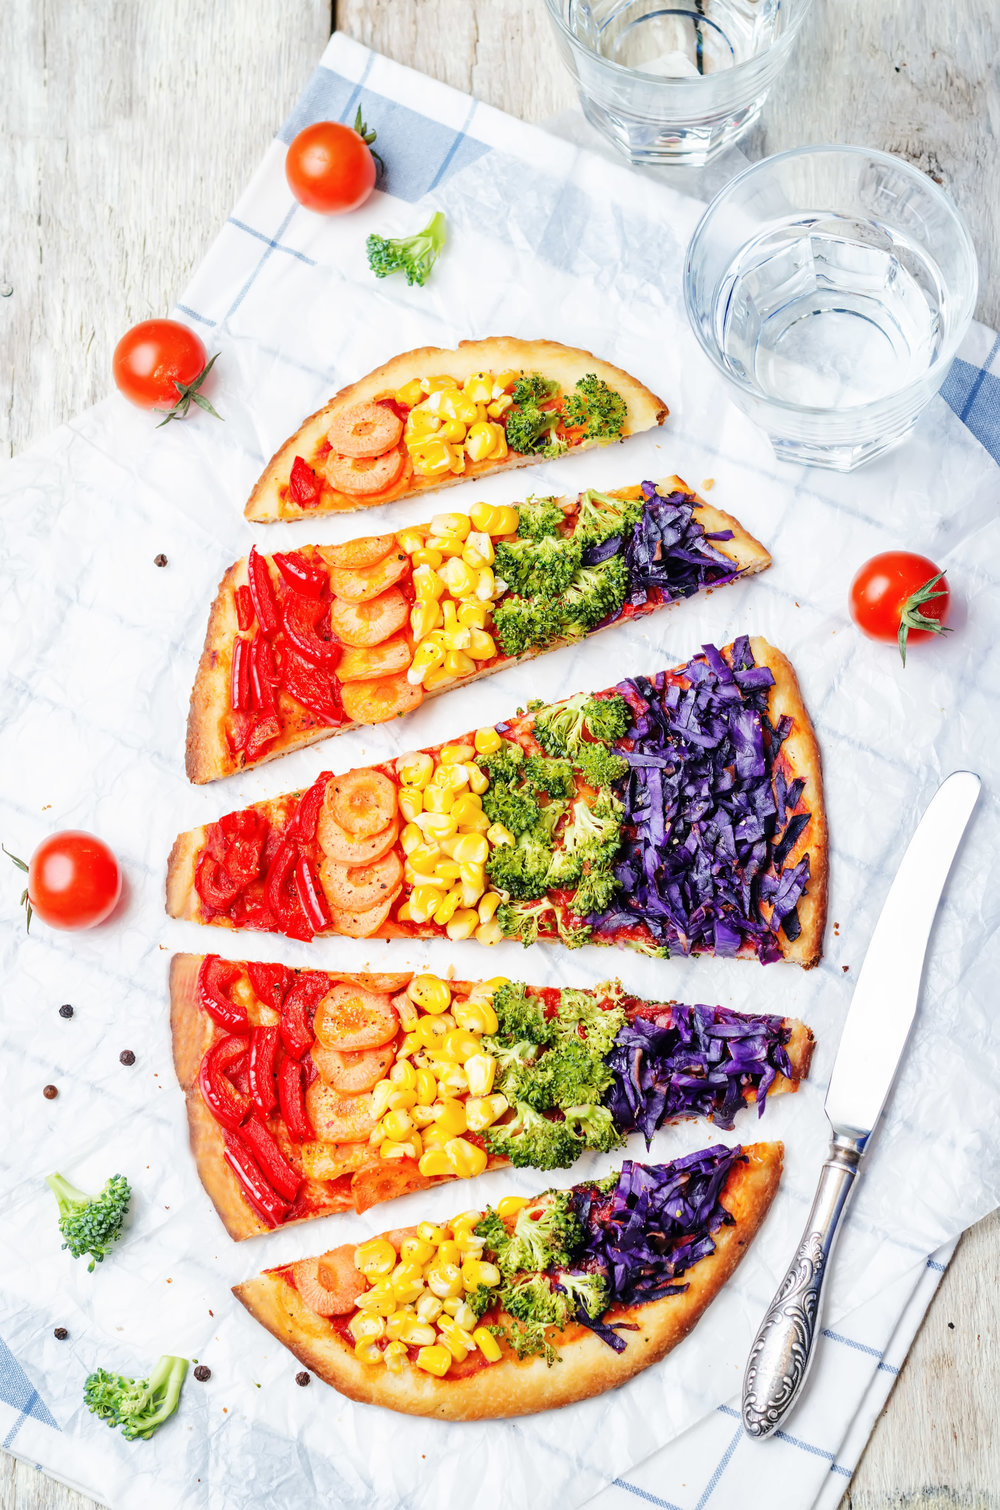 rainbow-vegan-pizza-PW5LZEY.jpg